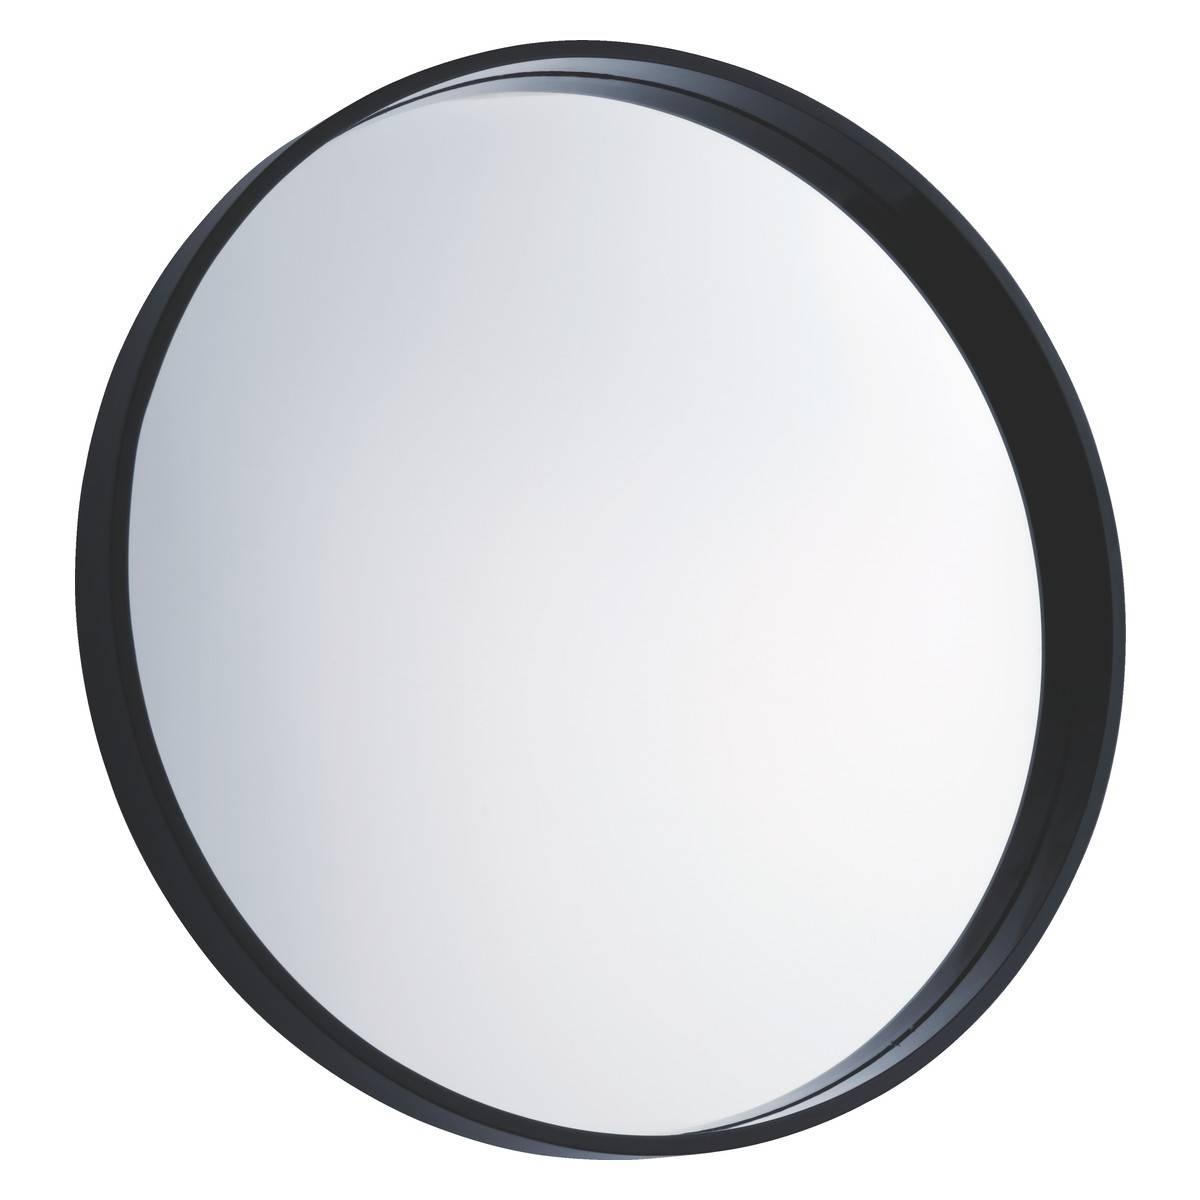 Aimee Black Round Wall Mirror D65Cm | Buy Now At Habitat Uk in Black Round Mirrors (Image 2 of 25)